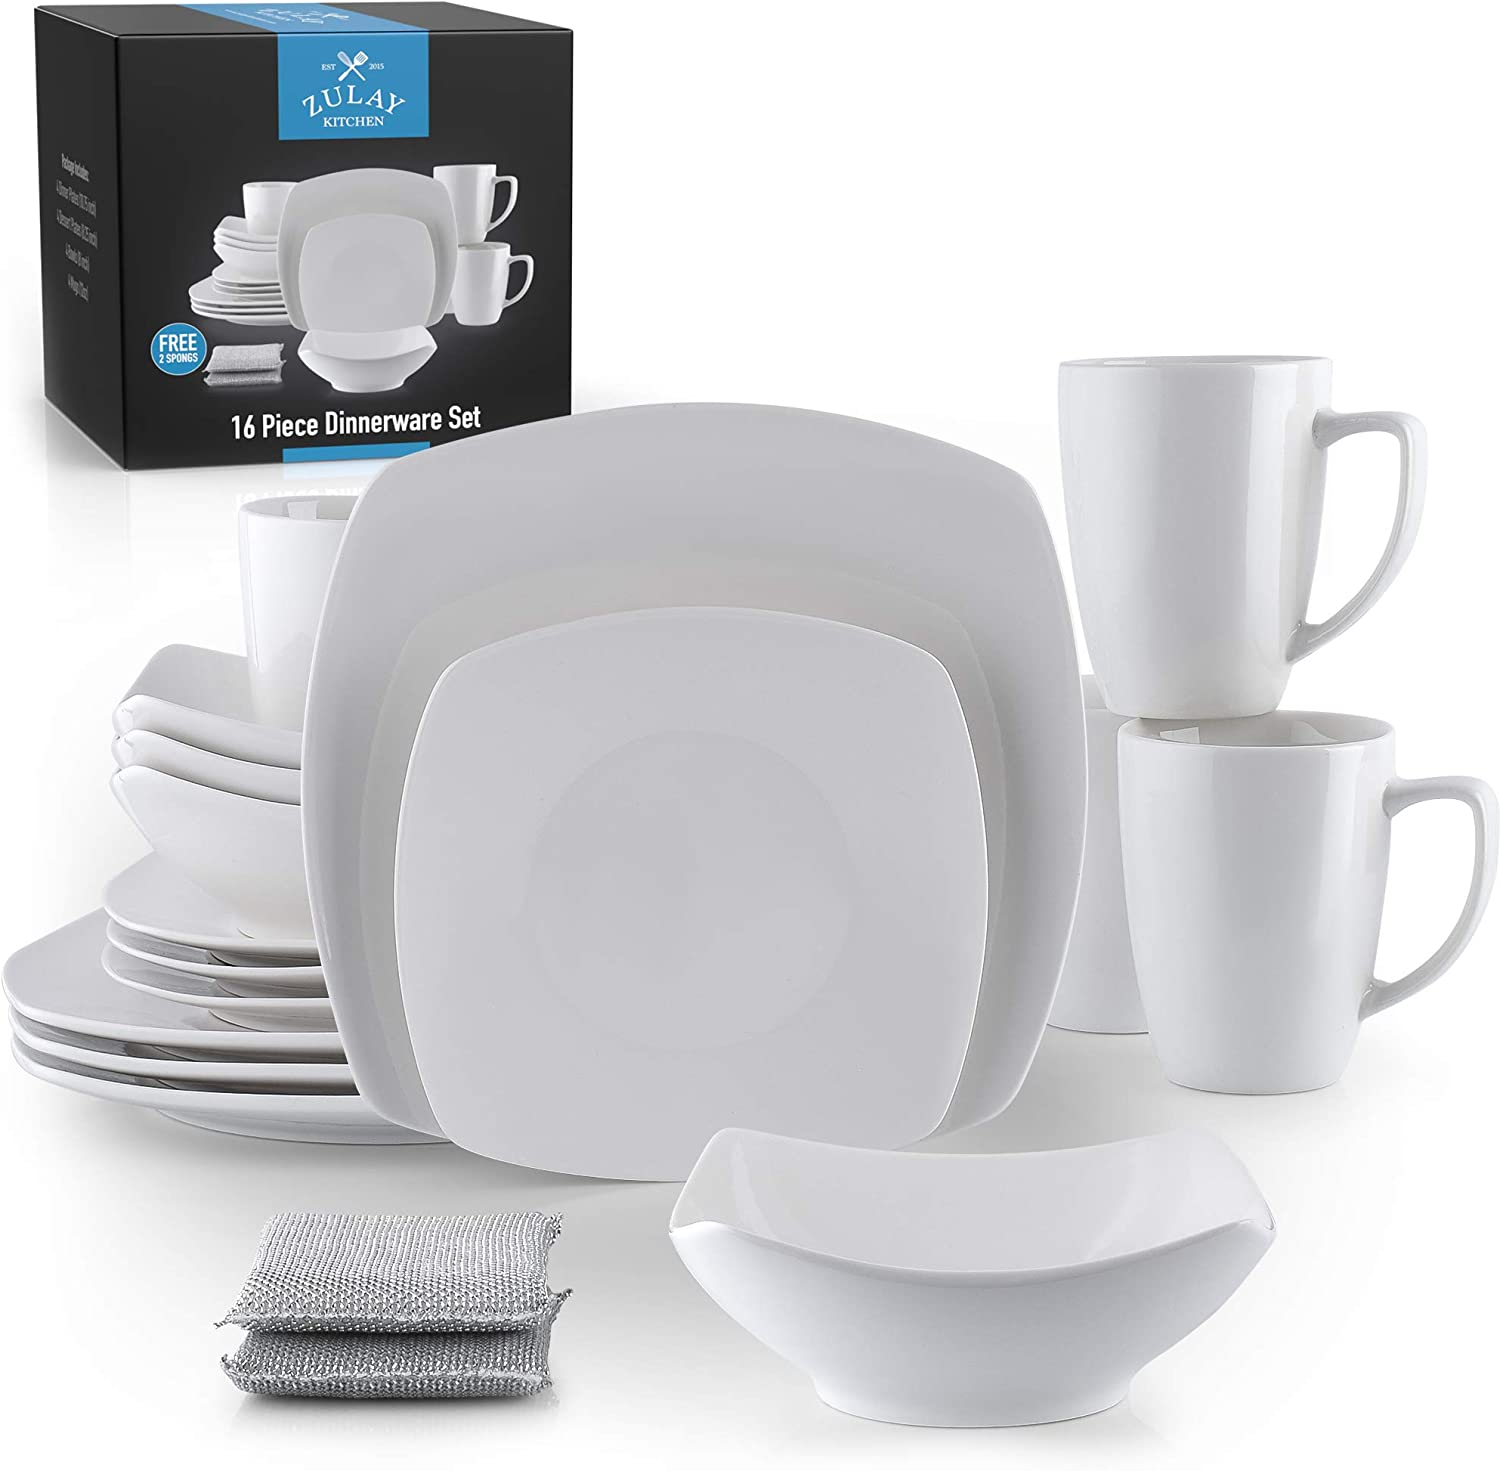 Zulay (16 Piece) Square Dinnerware Sets -Premium Quality Porcelain Plates Set & Dishes Set - Service For 4 Dishware Sets With 4 Plates, 4 Side Plate, 4 Soup Bowl, 4 Square Mug & 2 Silver Sponges